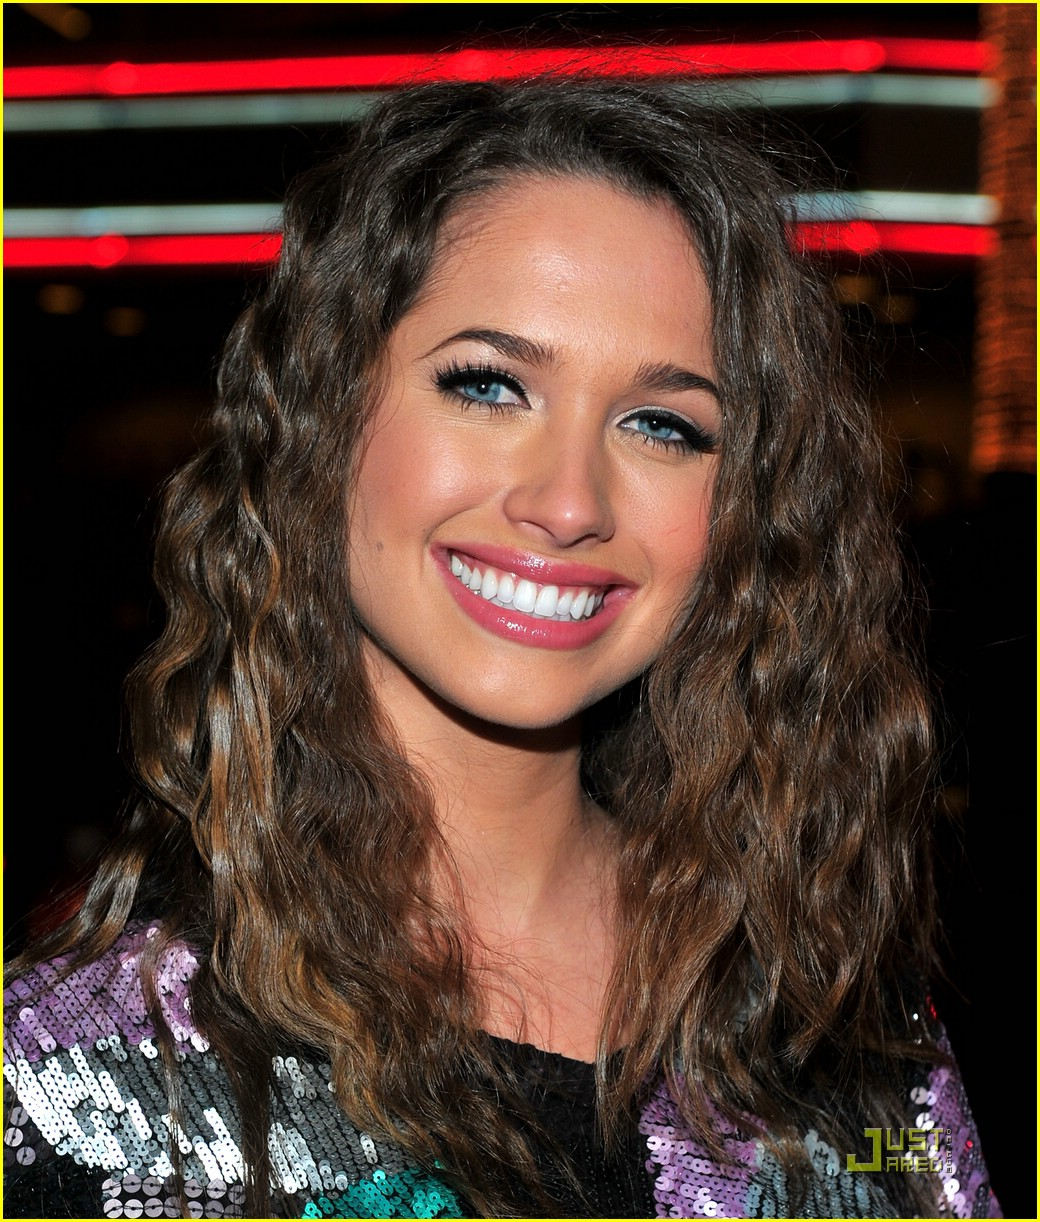 maiara walsh instagrammaiara walsh instagram, maiara walsh wdw, maiara walsh wiki, maiara walsh 2016, maiara walsh, maiara walsh movies, maiara walsh vampire diaries, maiara walsh imdb, maiara walsh boyfriend, maiara walsh 2015, maiara walsh twitter, maiara walsh zombieland, maiara walsh desperate housewives, maiara walsh 2014, maiara walsh facebook, maiara walsh bio, maiara walsh wikipedia, maiara walsh net worth